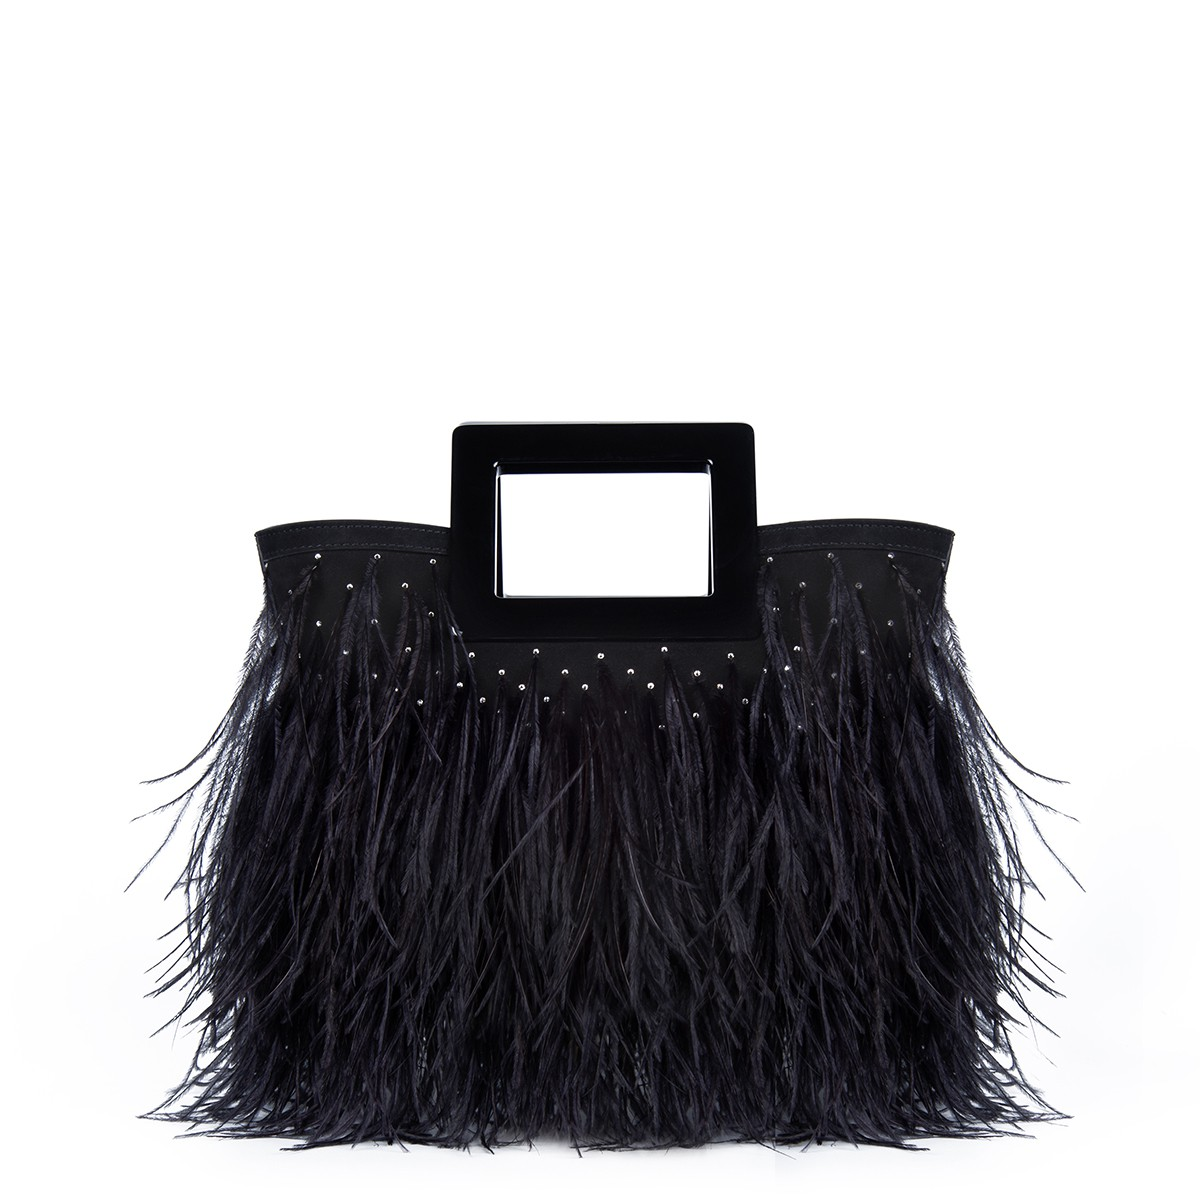 Micro Riviera in Feathered Black Suede4